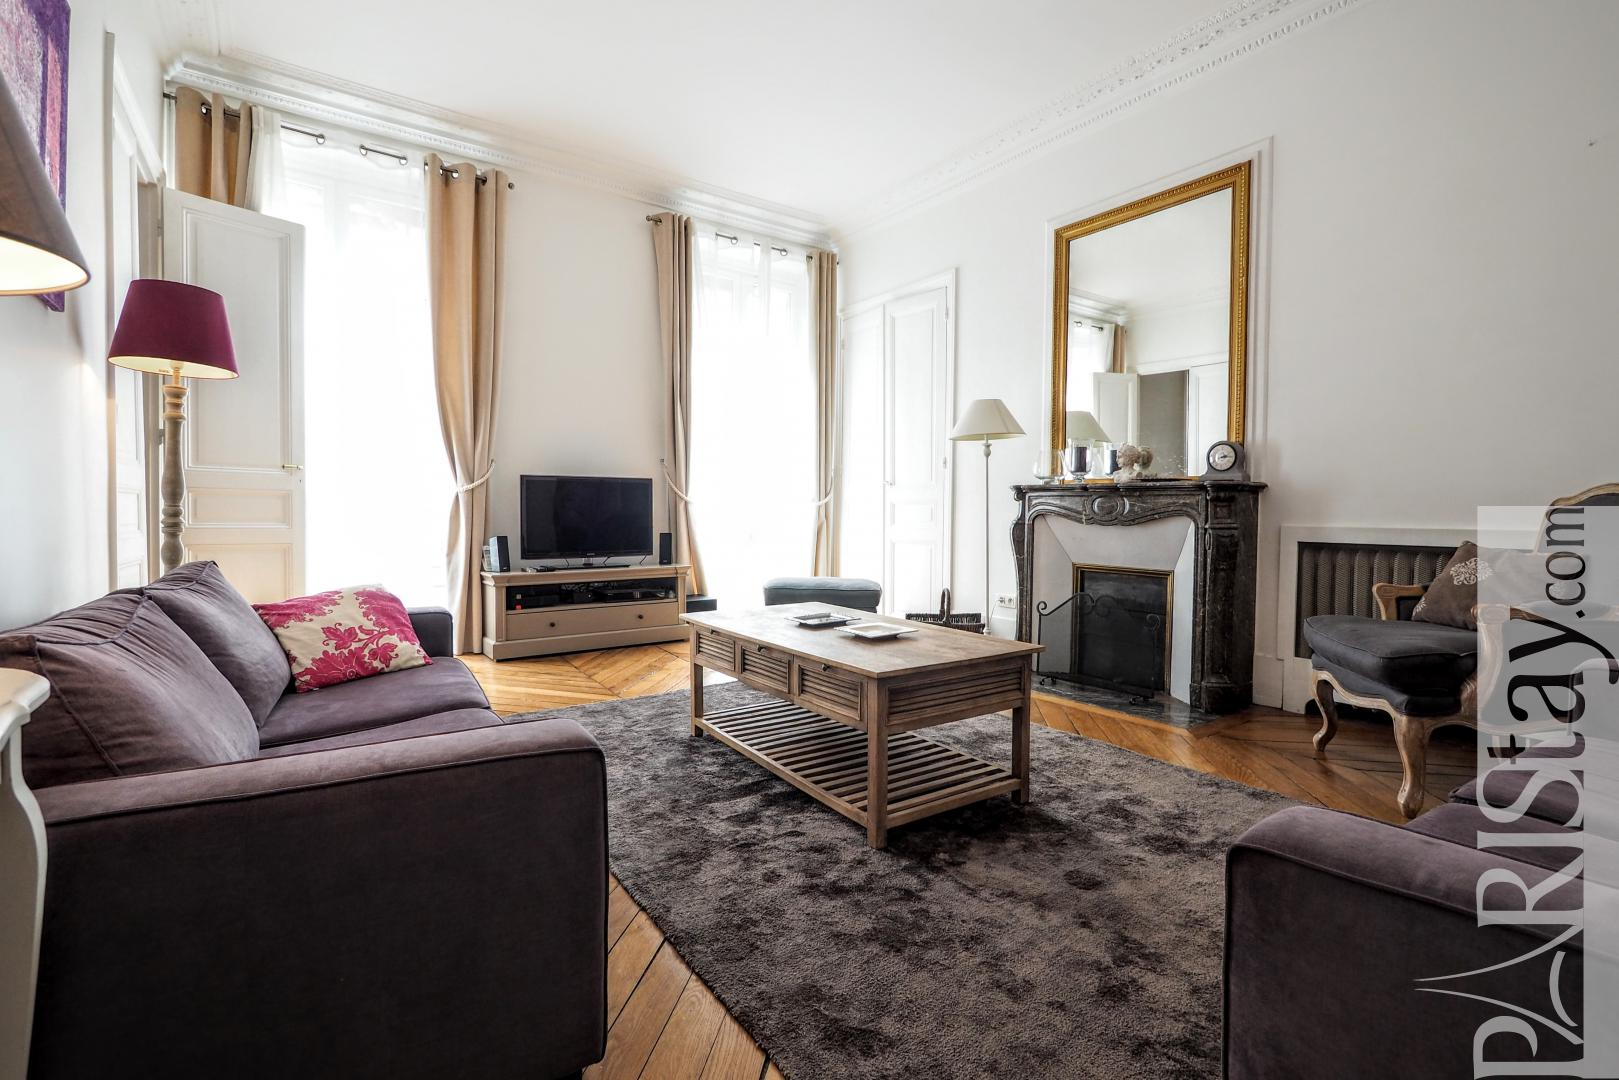 Paris 2 bedroom apartment for rent, furnished, Orsay museum